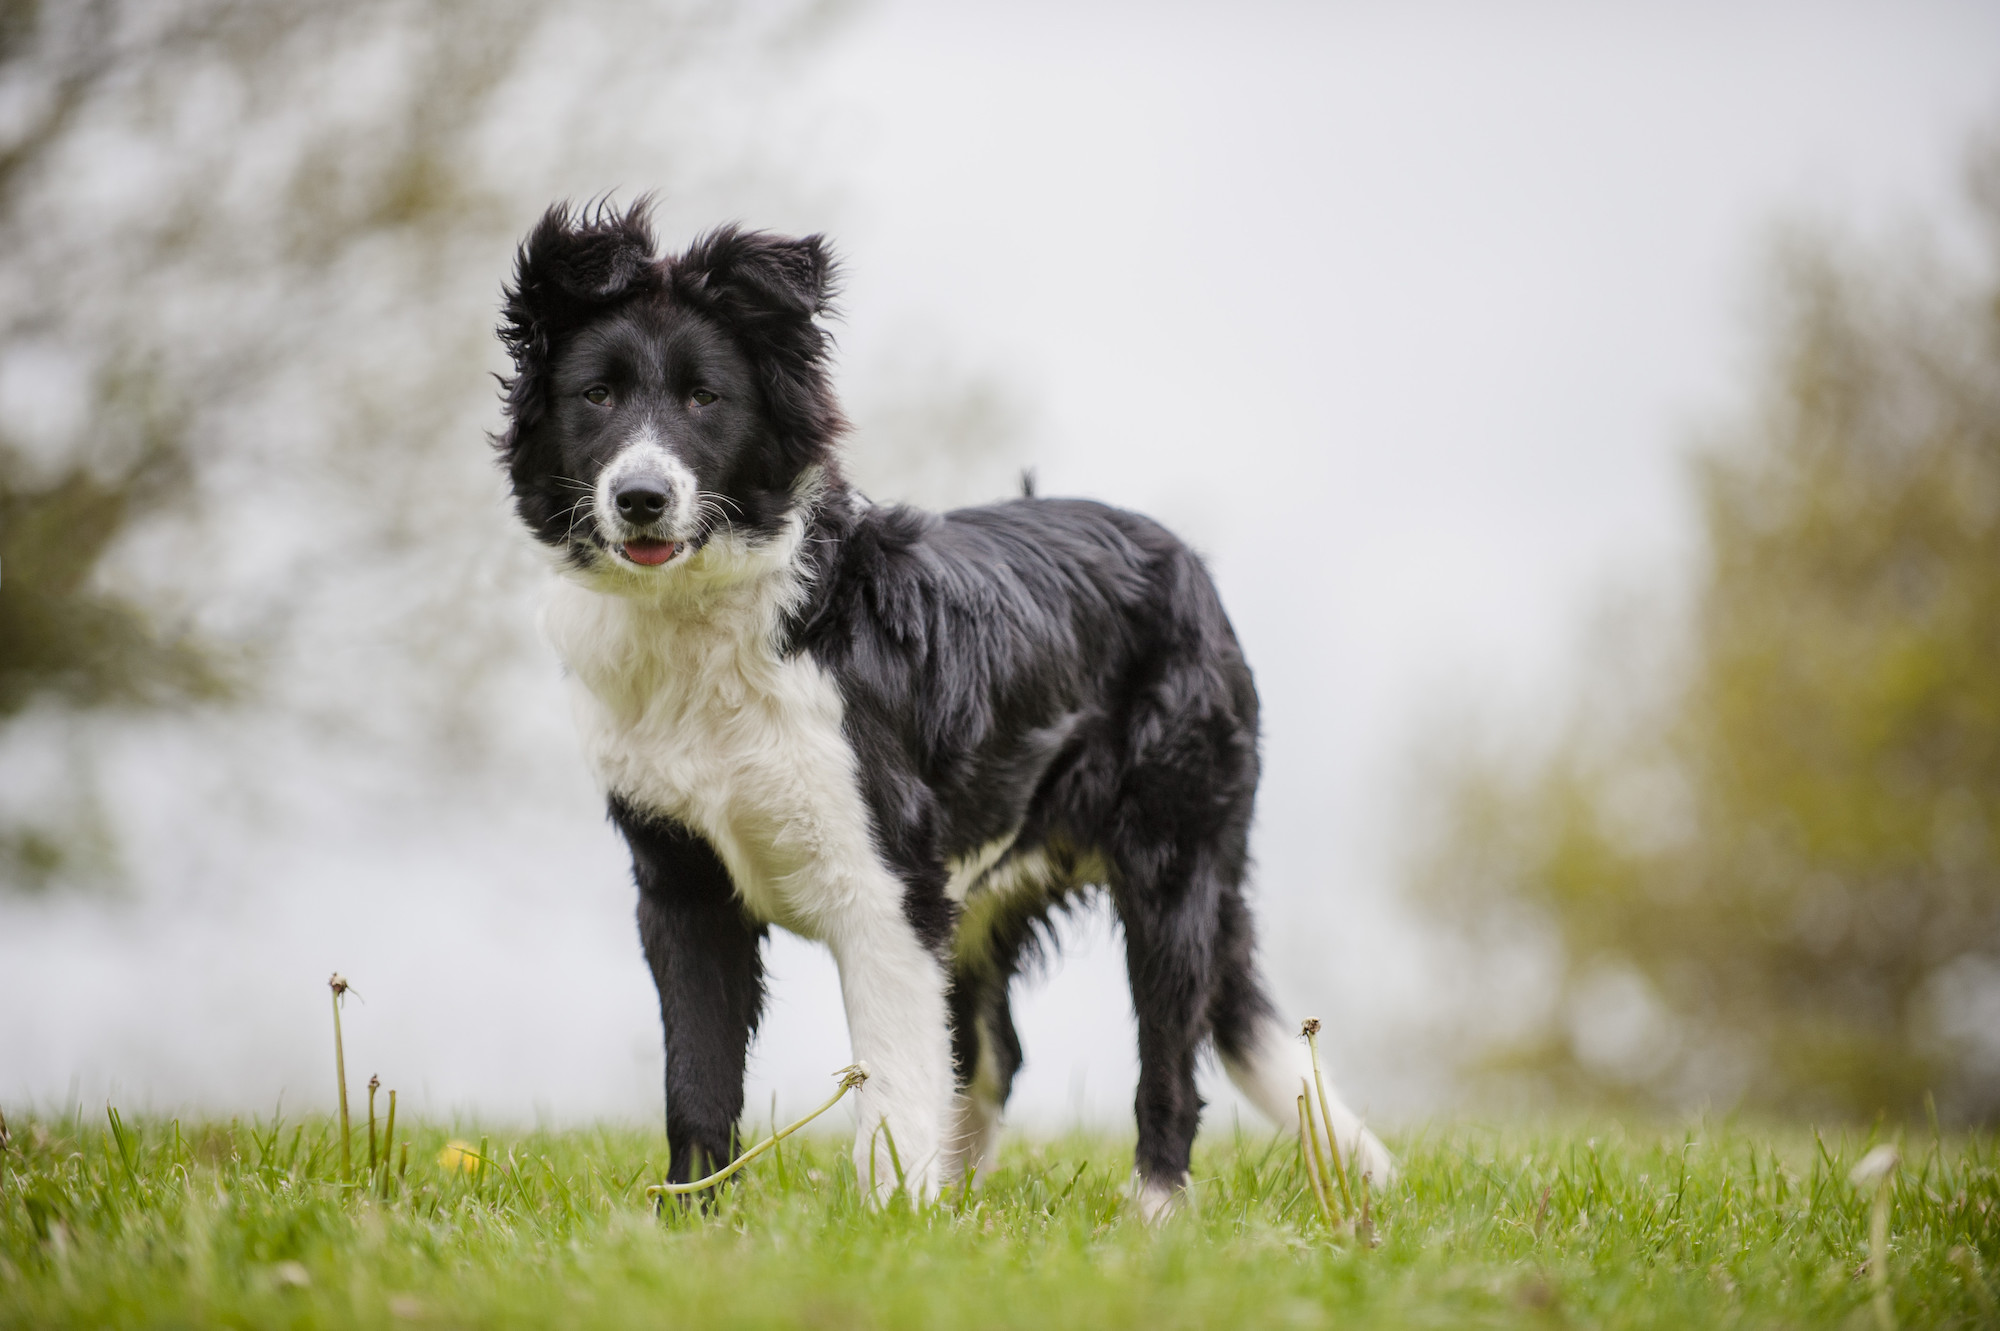 Missing and Stray Dogs | Lost or Found a Dog? | Blue Cross